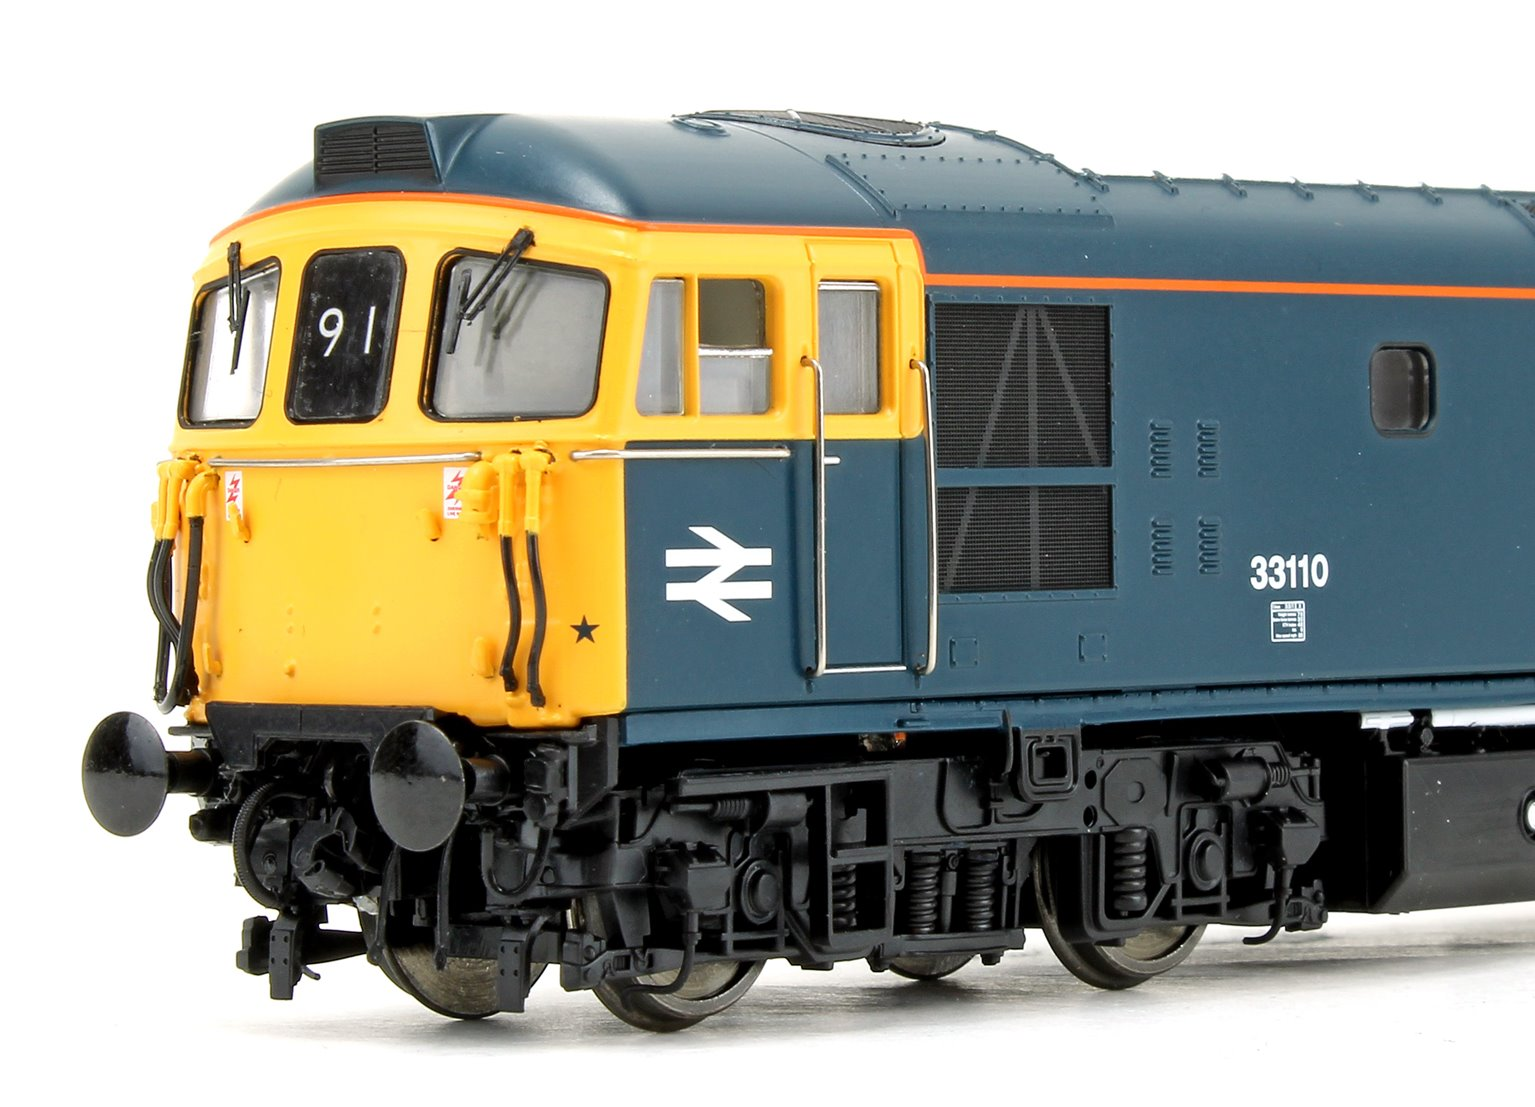 Class 33 110 BR Blue (DCE yellow cab side stripes and orange catrain stripes) Diesel Locomotive